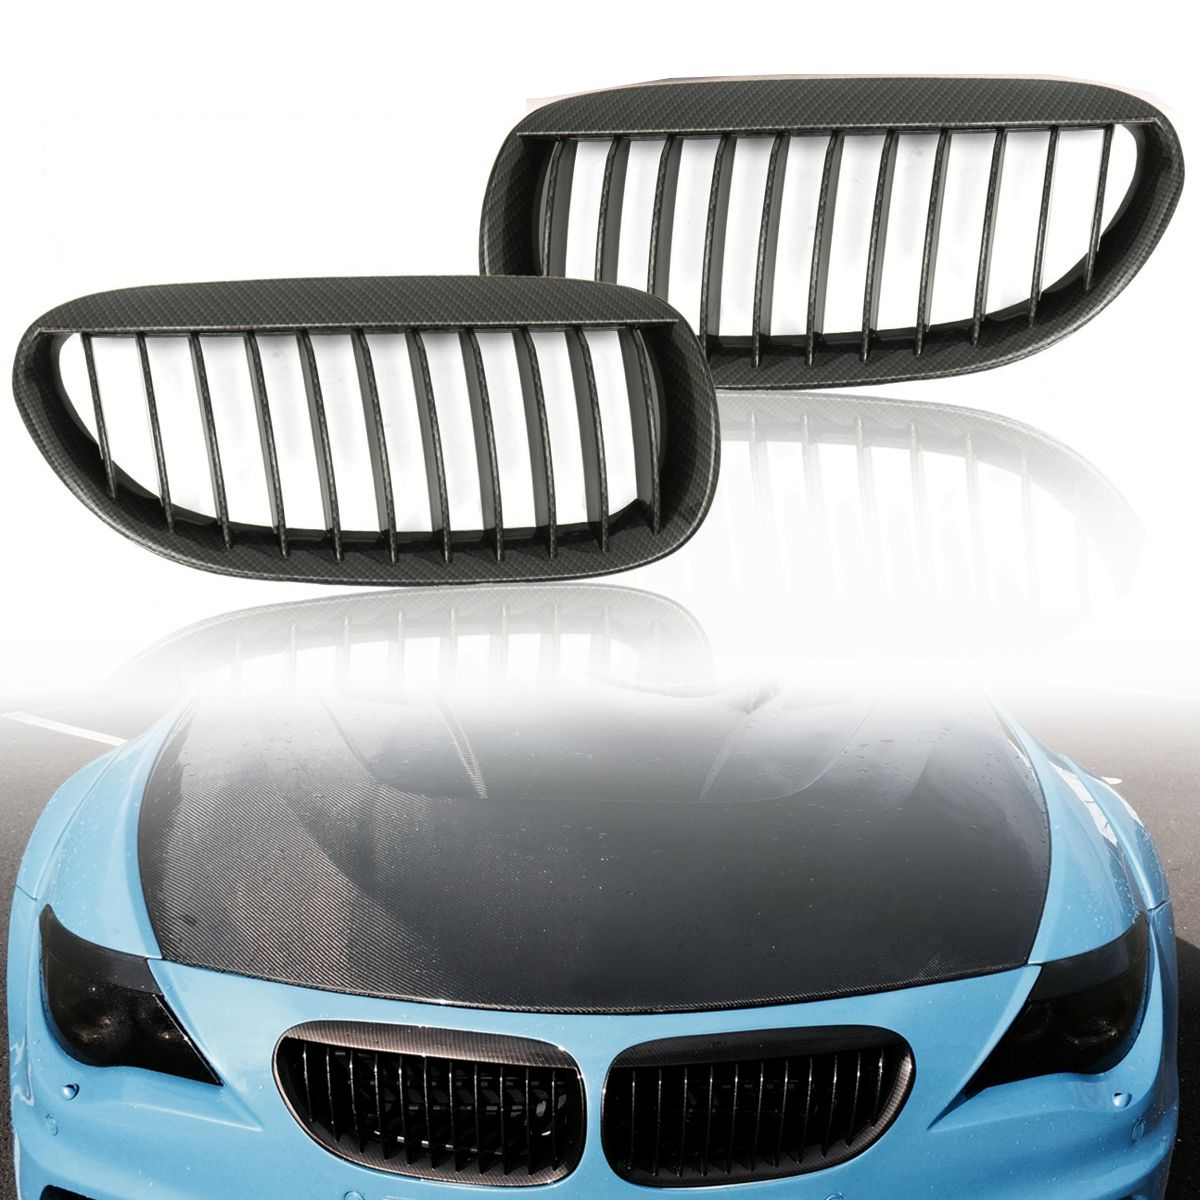 Pair Carbon Grain Kidney Grilles Front Right Left For BMW E63 E64 6 Series 2 Door Grille 2003 2004 2005 2006 2007 2008 2009 2010 women purse solid color mini grind magic bifold leather wallet card holder clutch women handbag portefeuille femme dropshipping